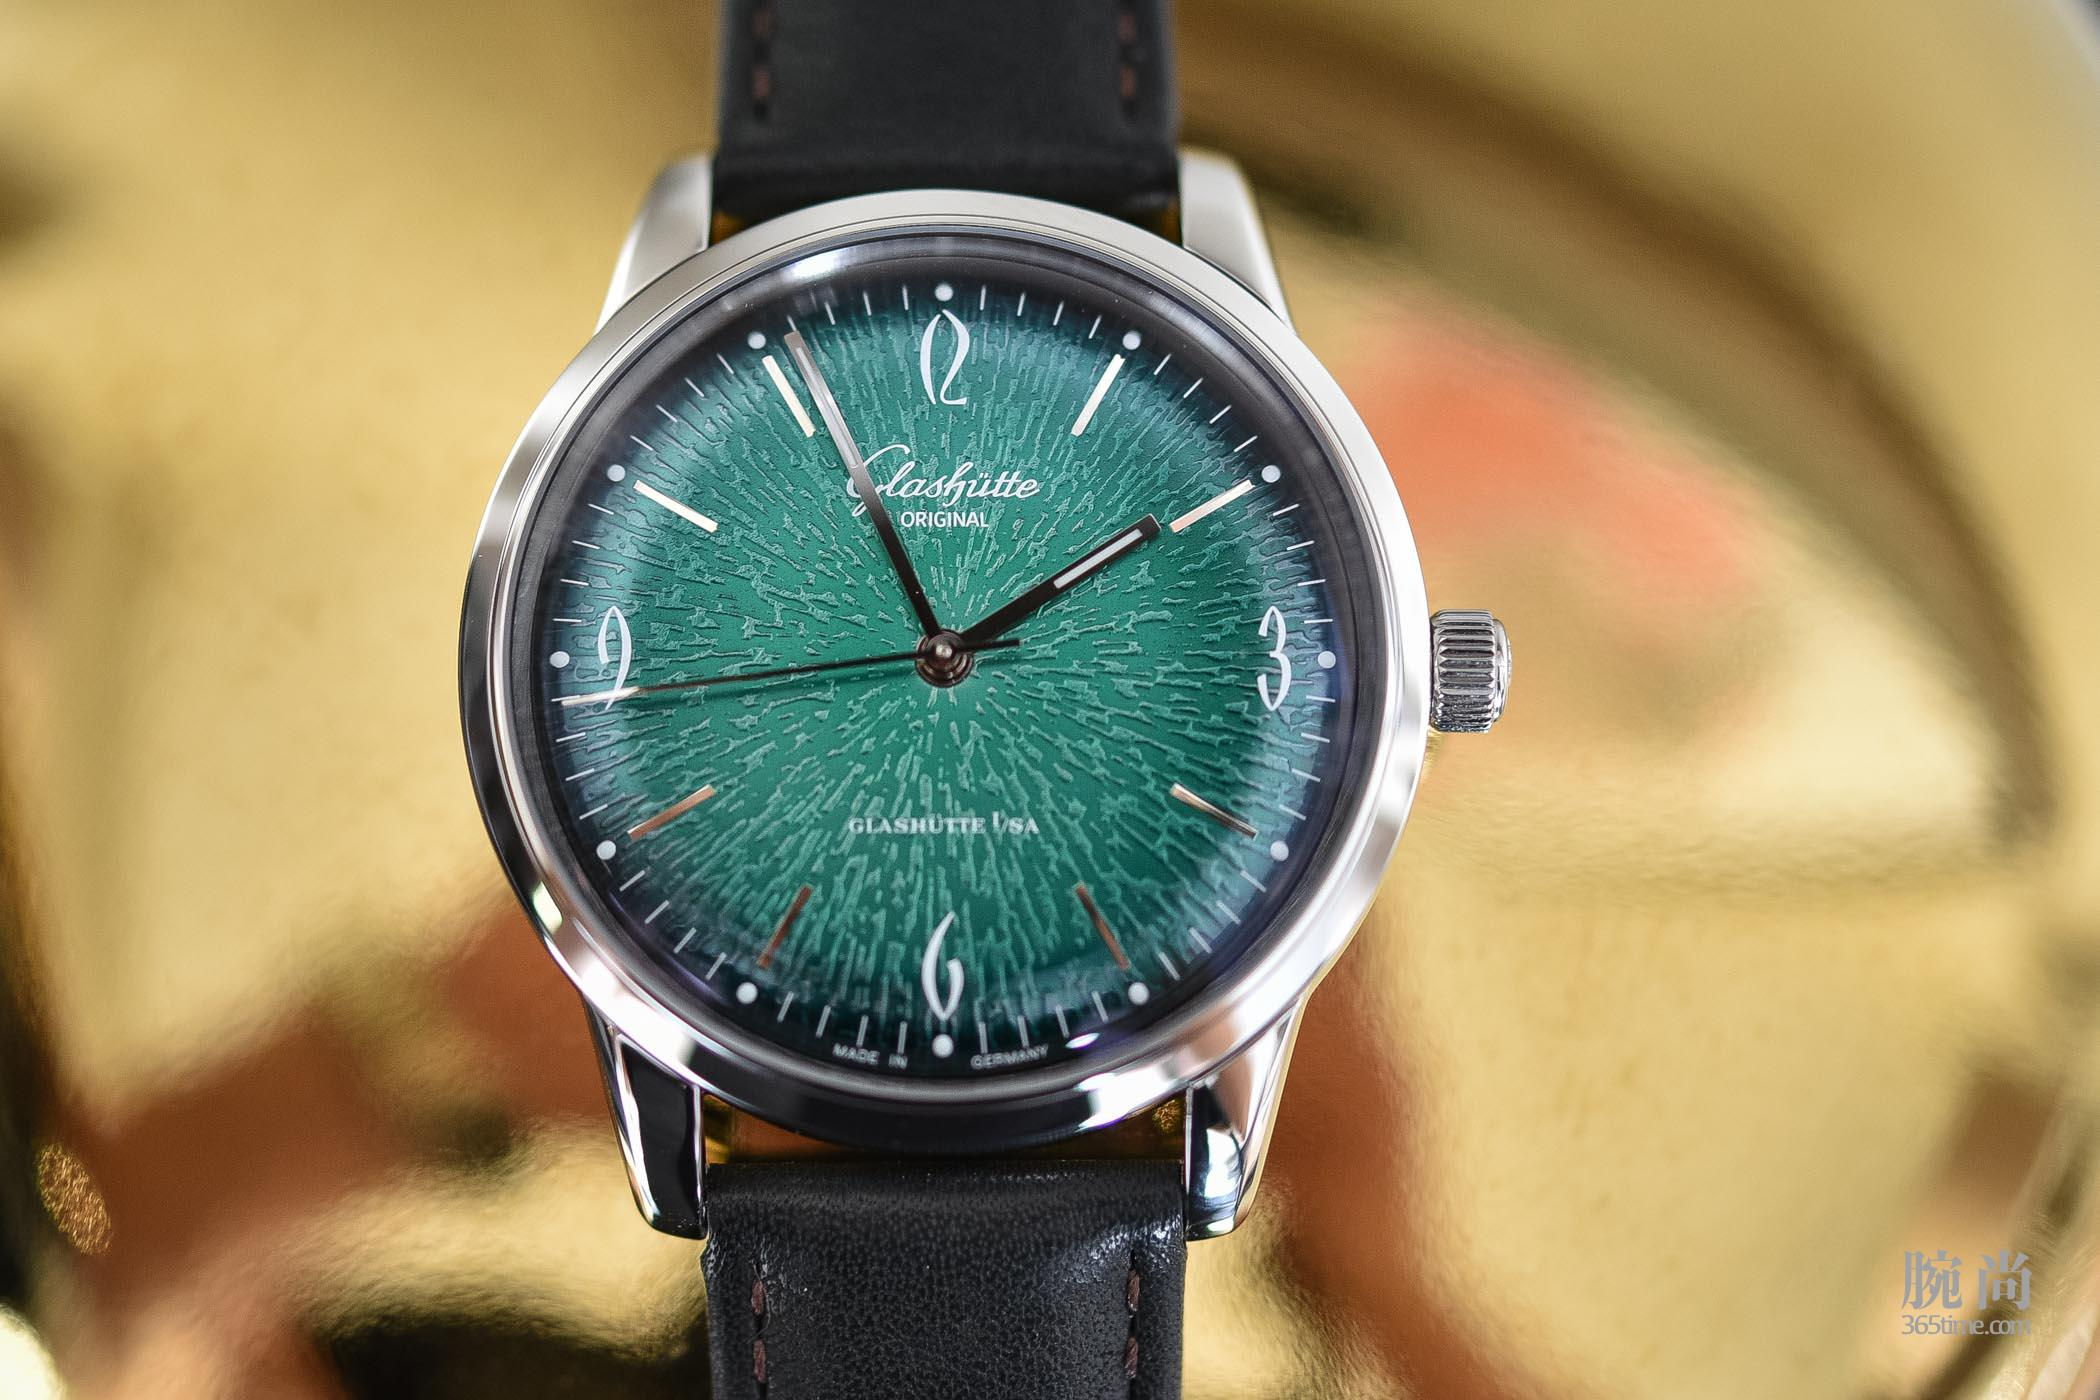 Glashutte-Original-Sixties-Annual-Edition-2018-Green-Dial-39mm-1-39-52-03-02-04-15.jpg